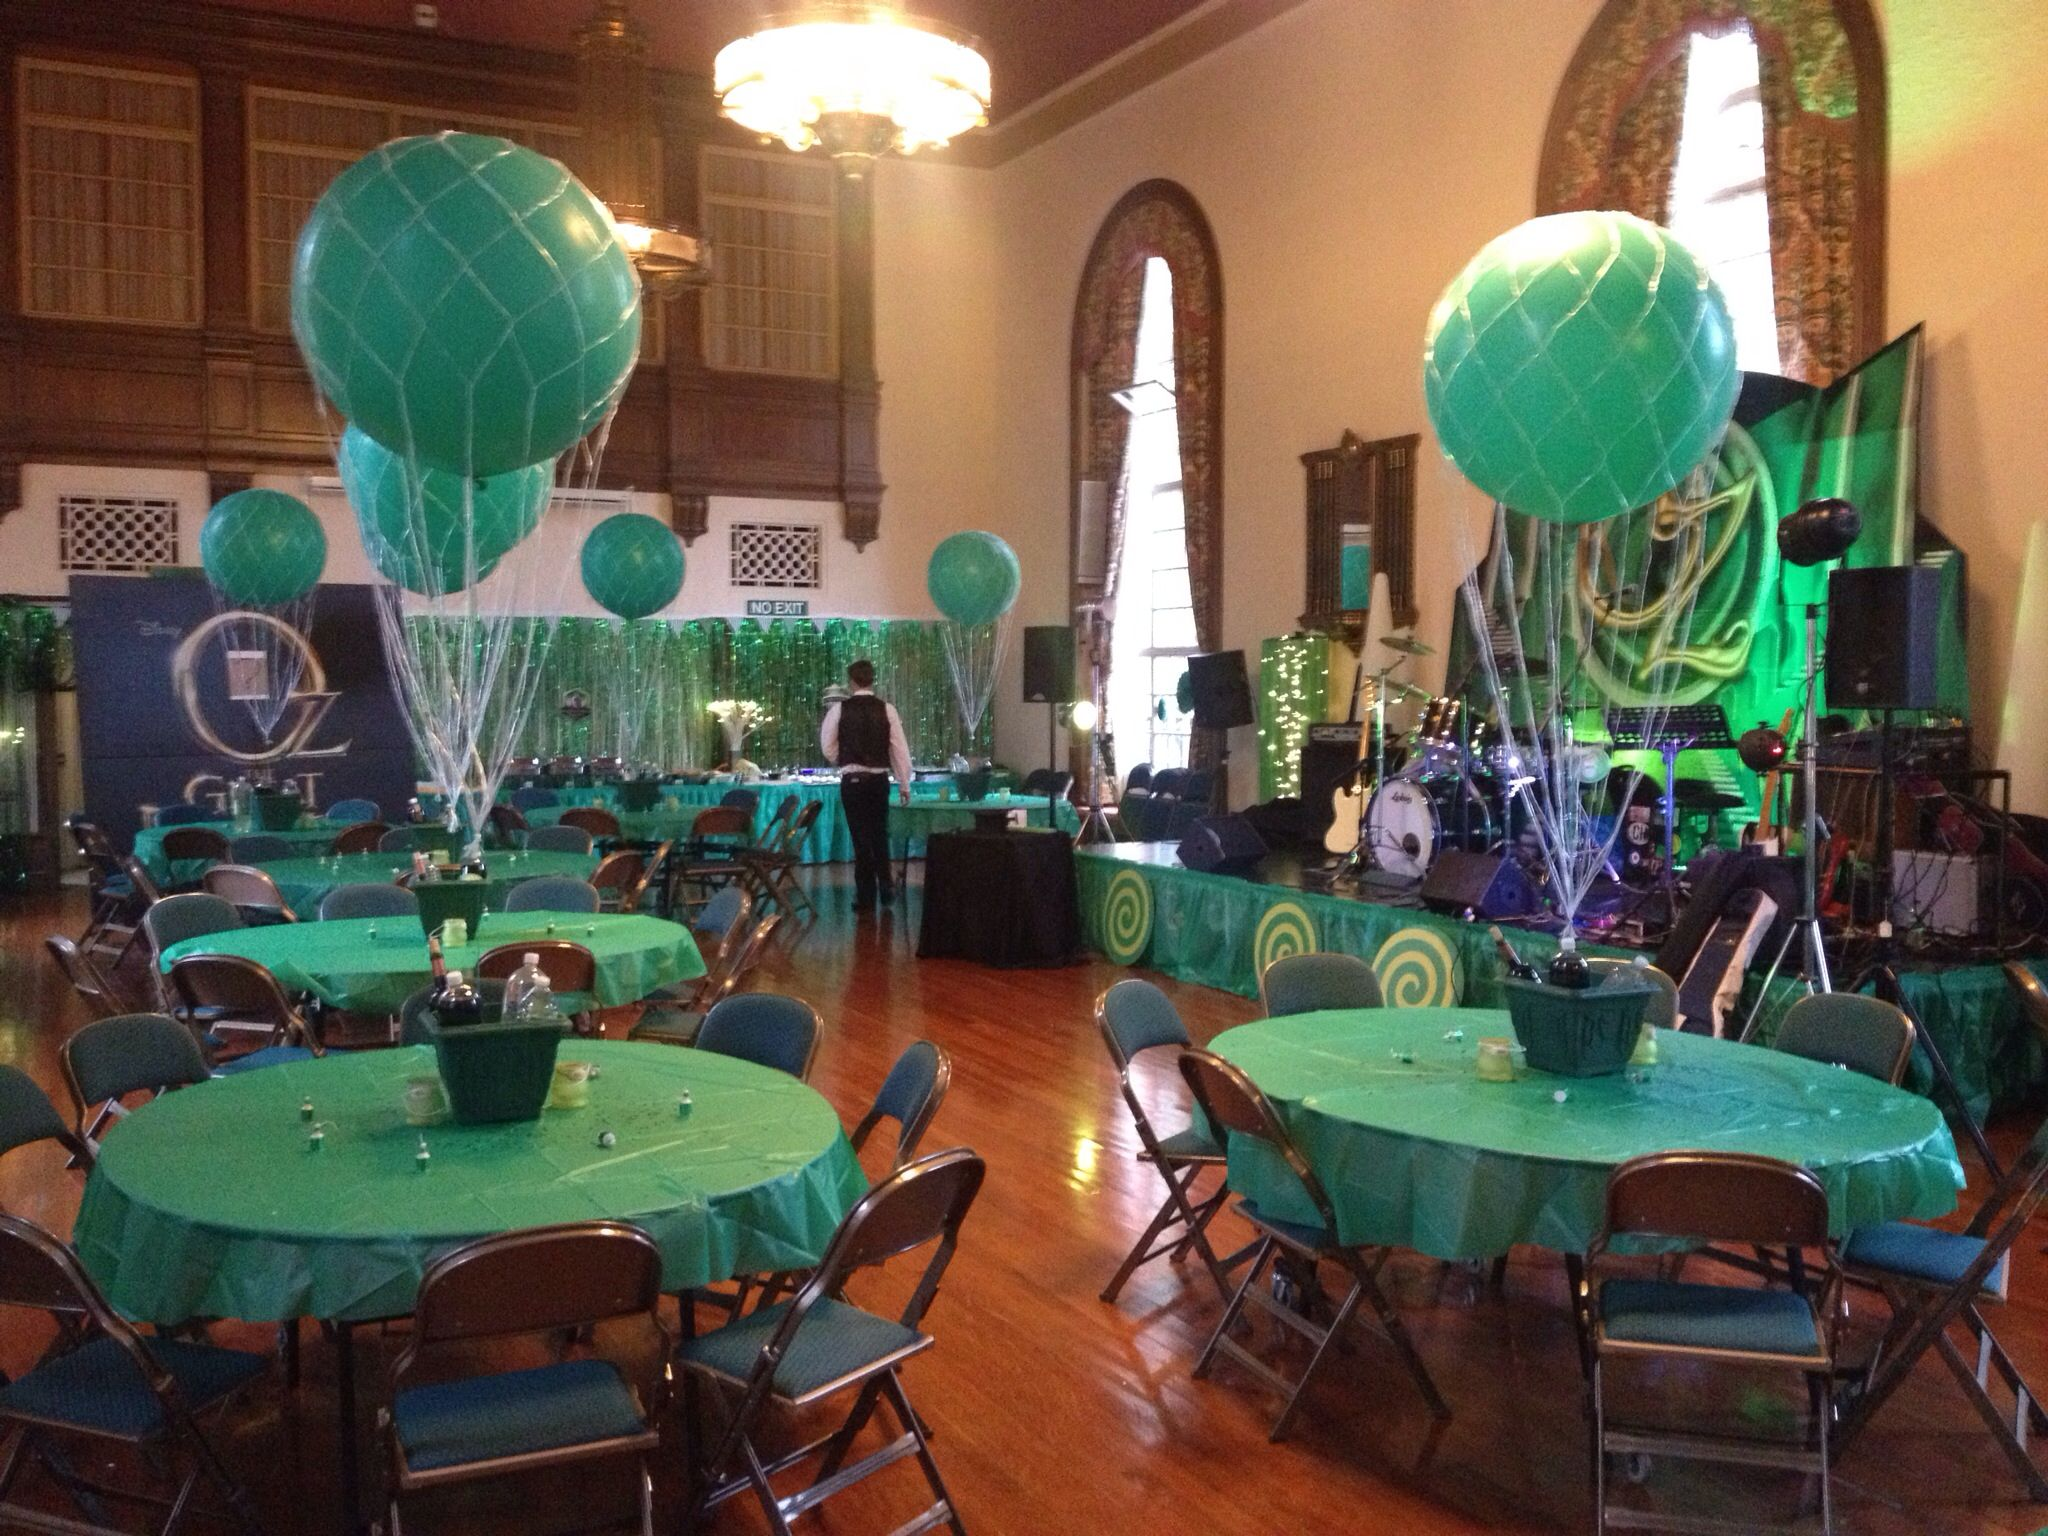 take me to the emerald city wizard of oz theme is perfect for kd love these hot air balloon centerpieces